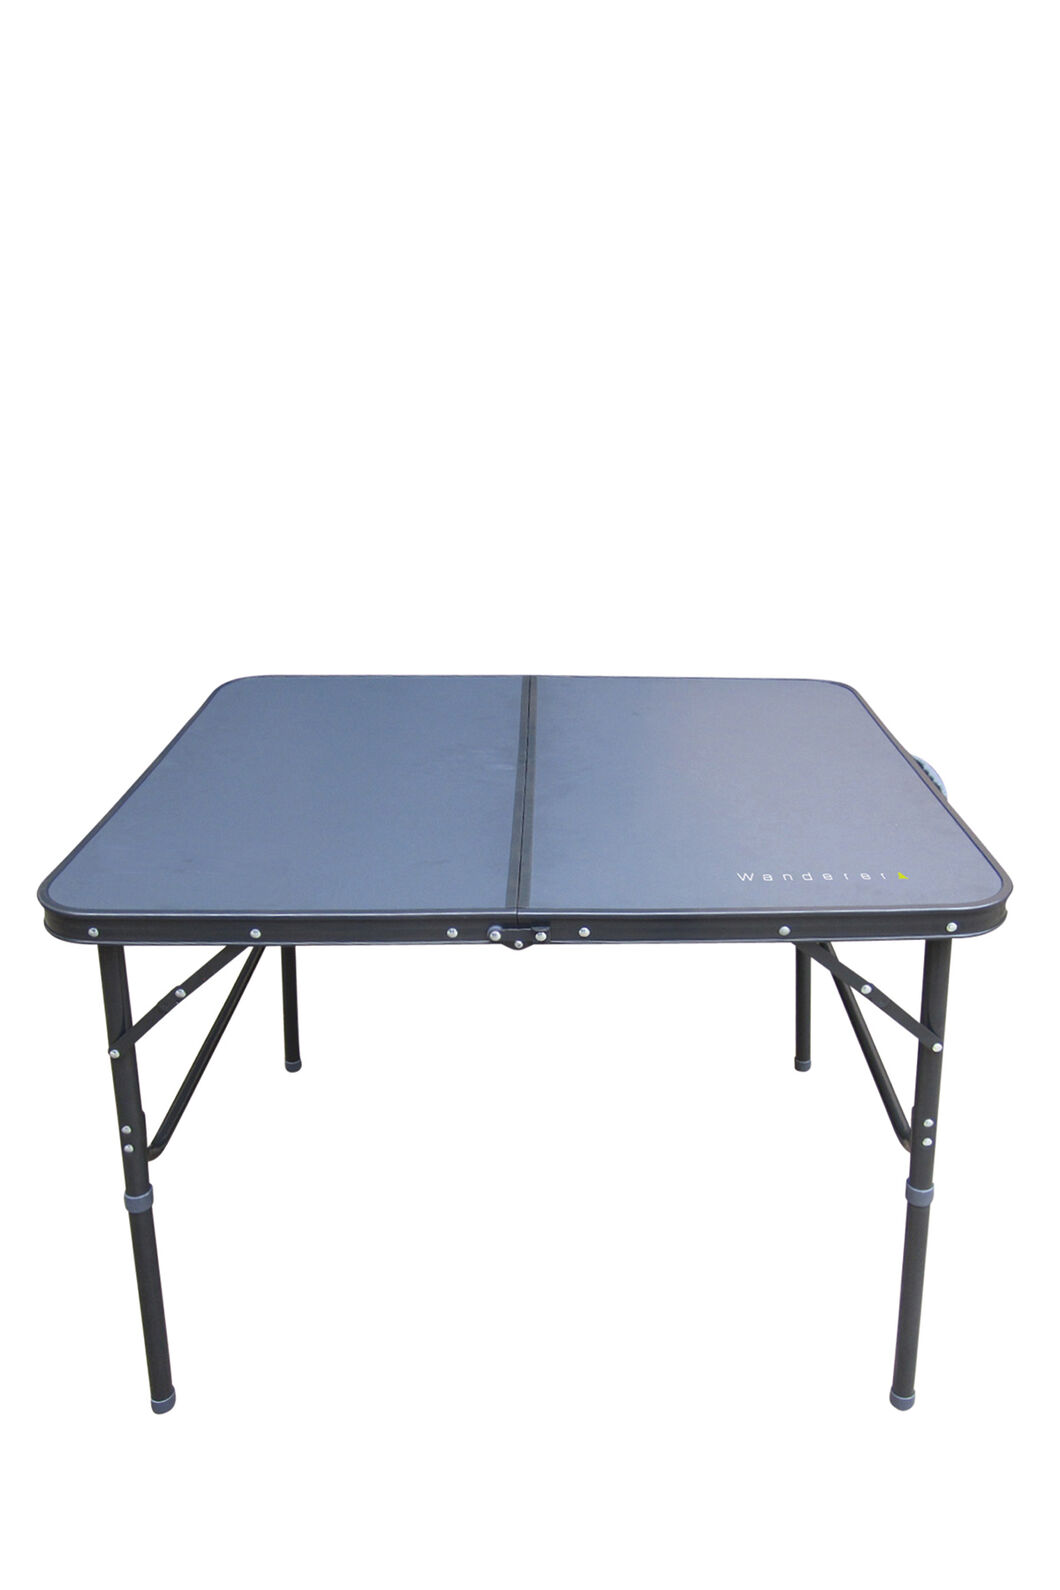 Wanderer Aluminium Folding Table, None, hi-res